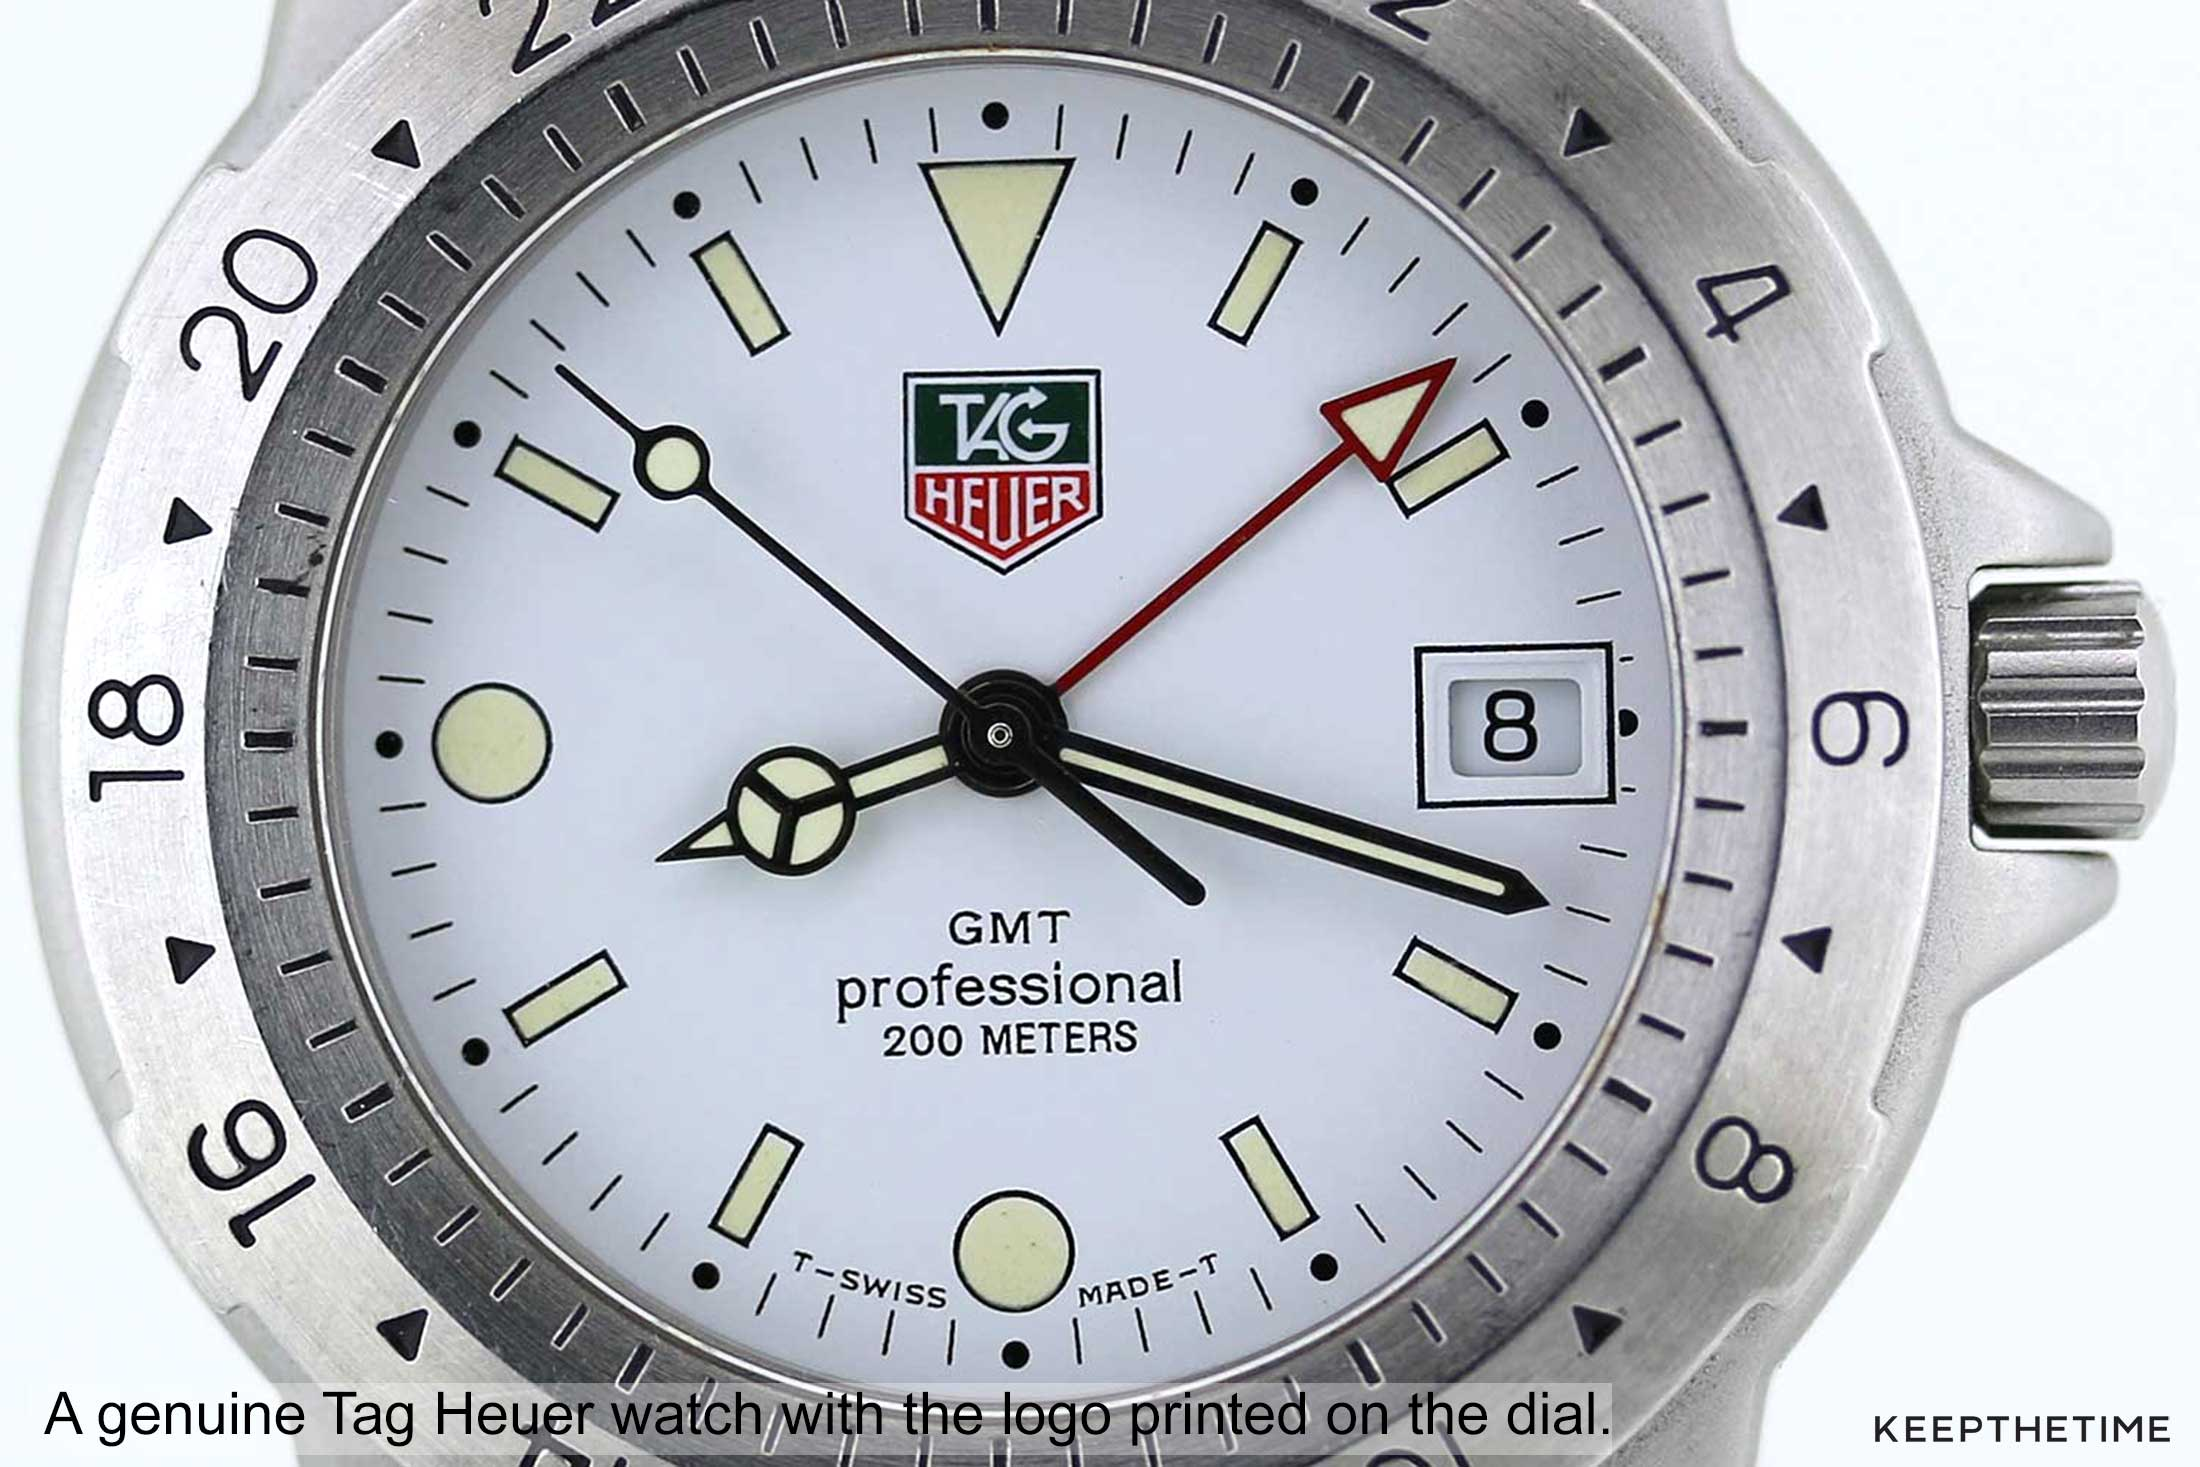 Tag Heuer Logo Printed On Dial